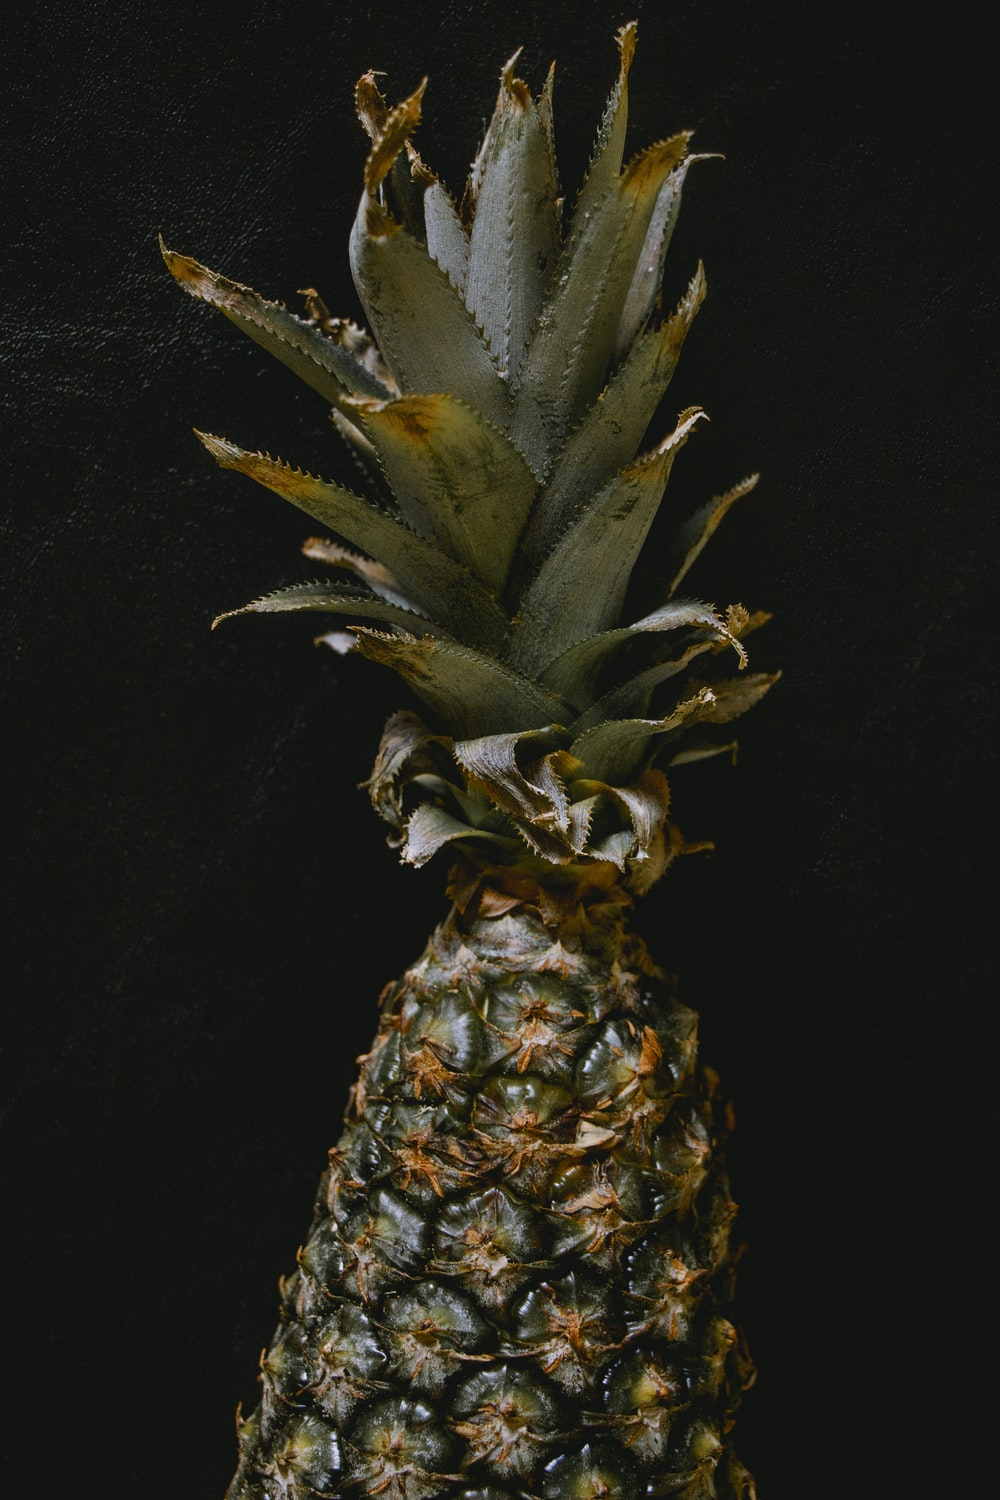 pineapple fruit with black background